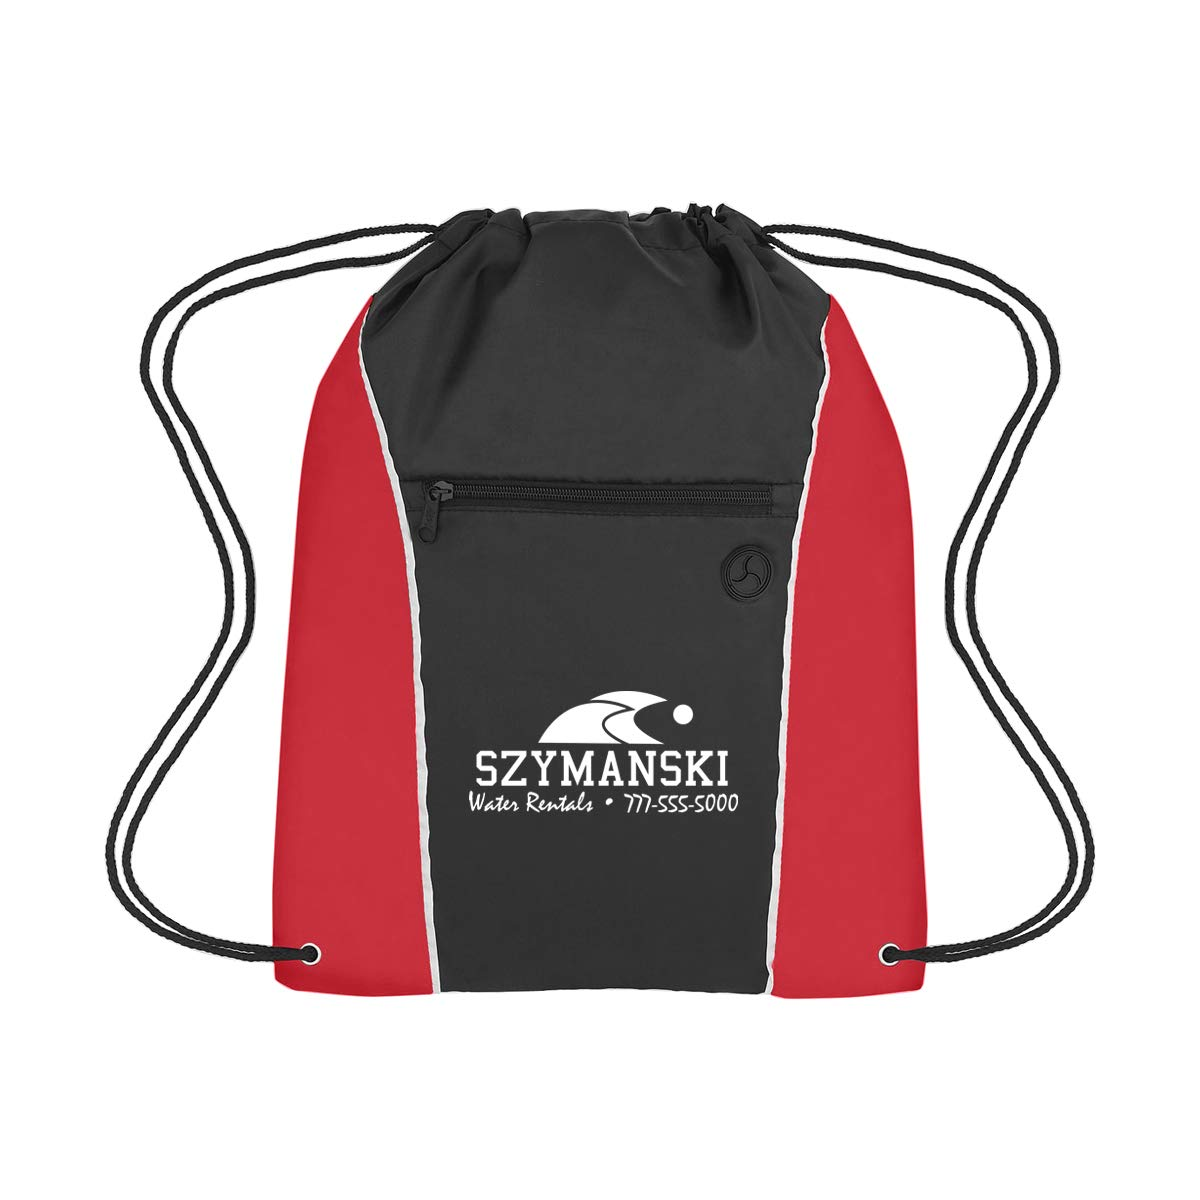 Promotional Product Imprinted /& Personalized Bulk with Your Custom Logo Promo Direct 24612-Gray Vertical Sports Pack 4.46 Each 50 Qty